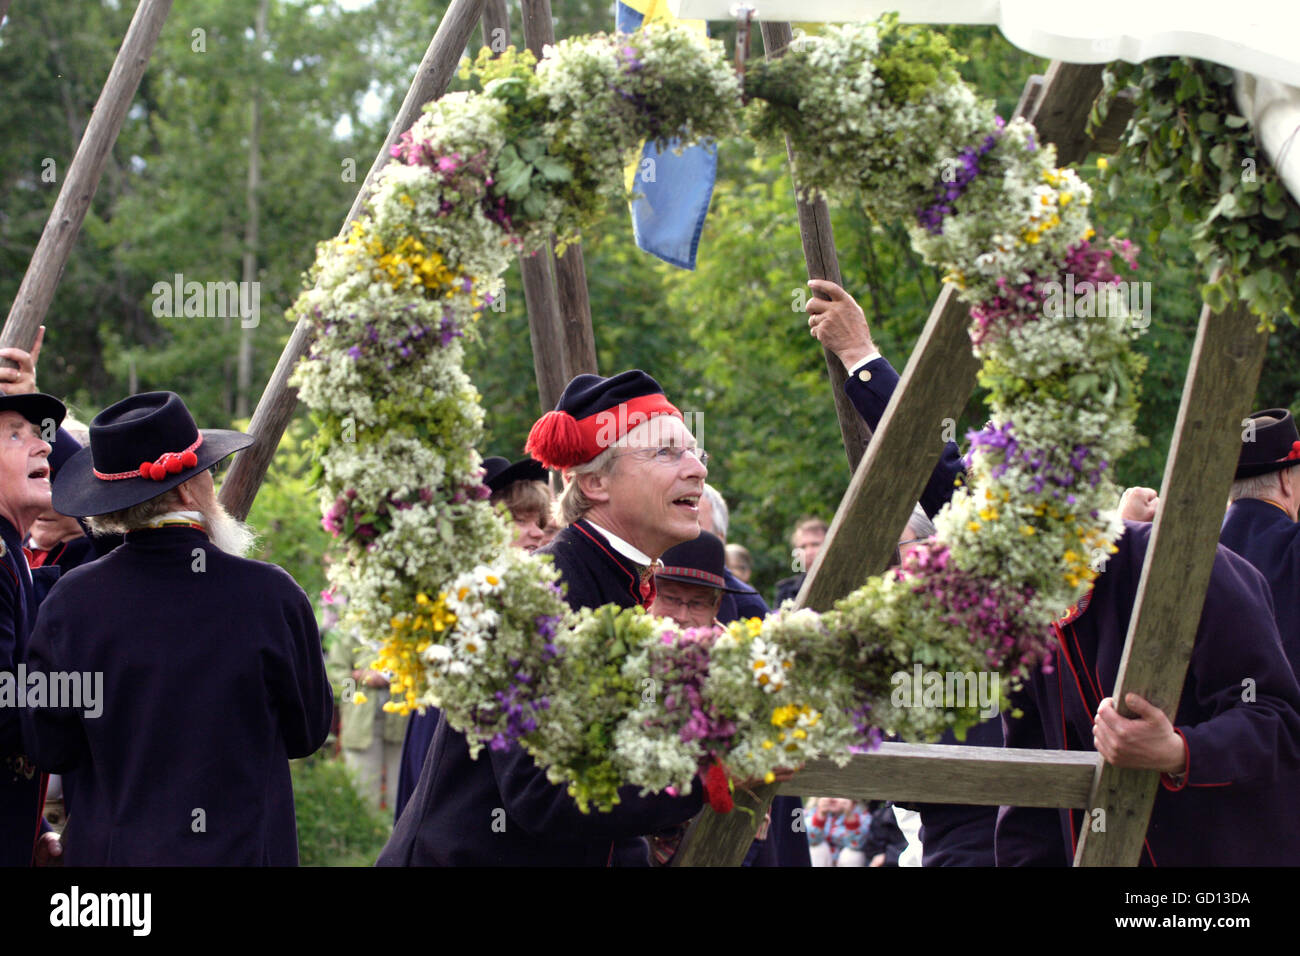 MIDSUMMER people in costumes preparing the festivities - Stock Image